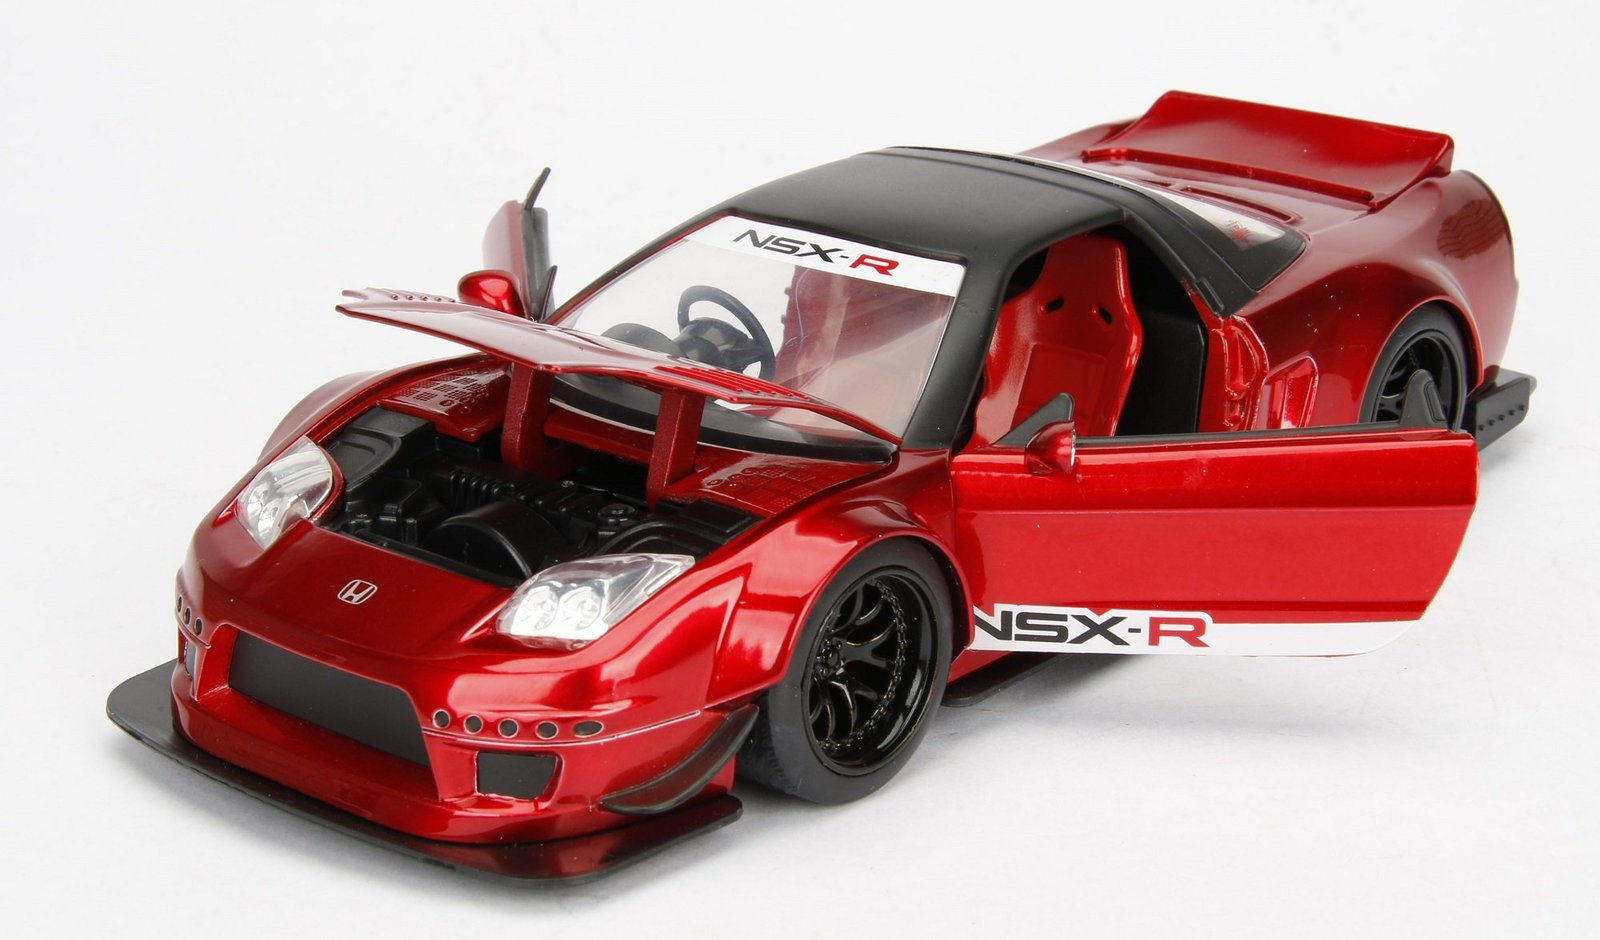 Jada 1/32 Jdm NSX R 2002 (Red) - Diecast Model image